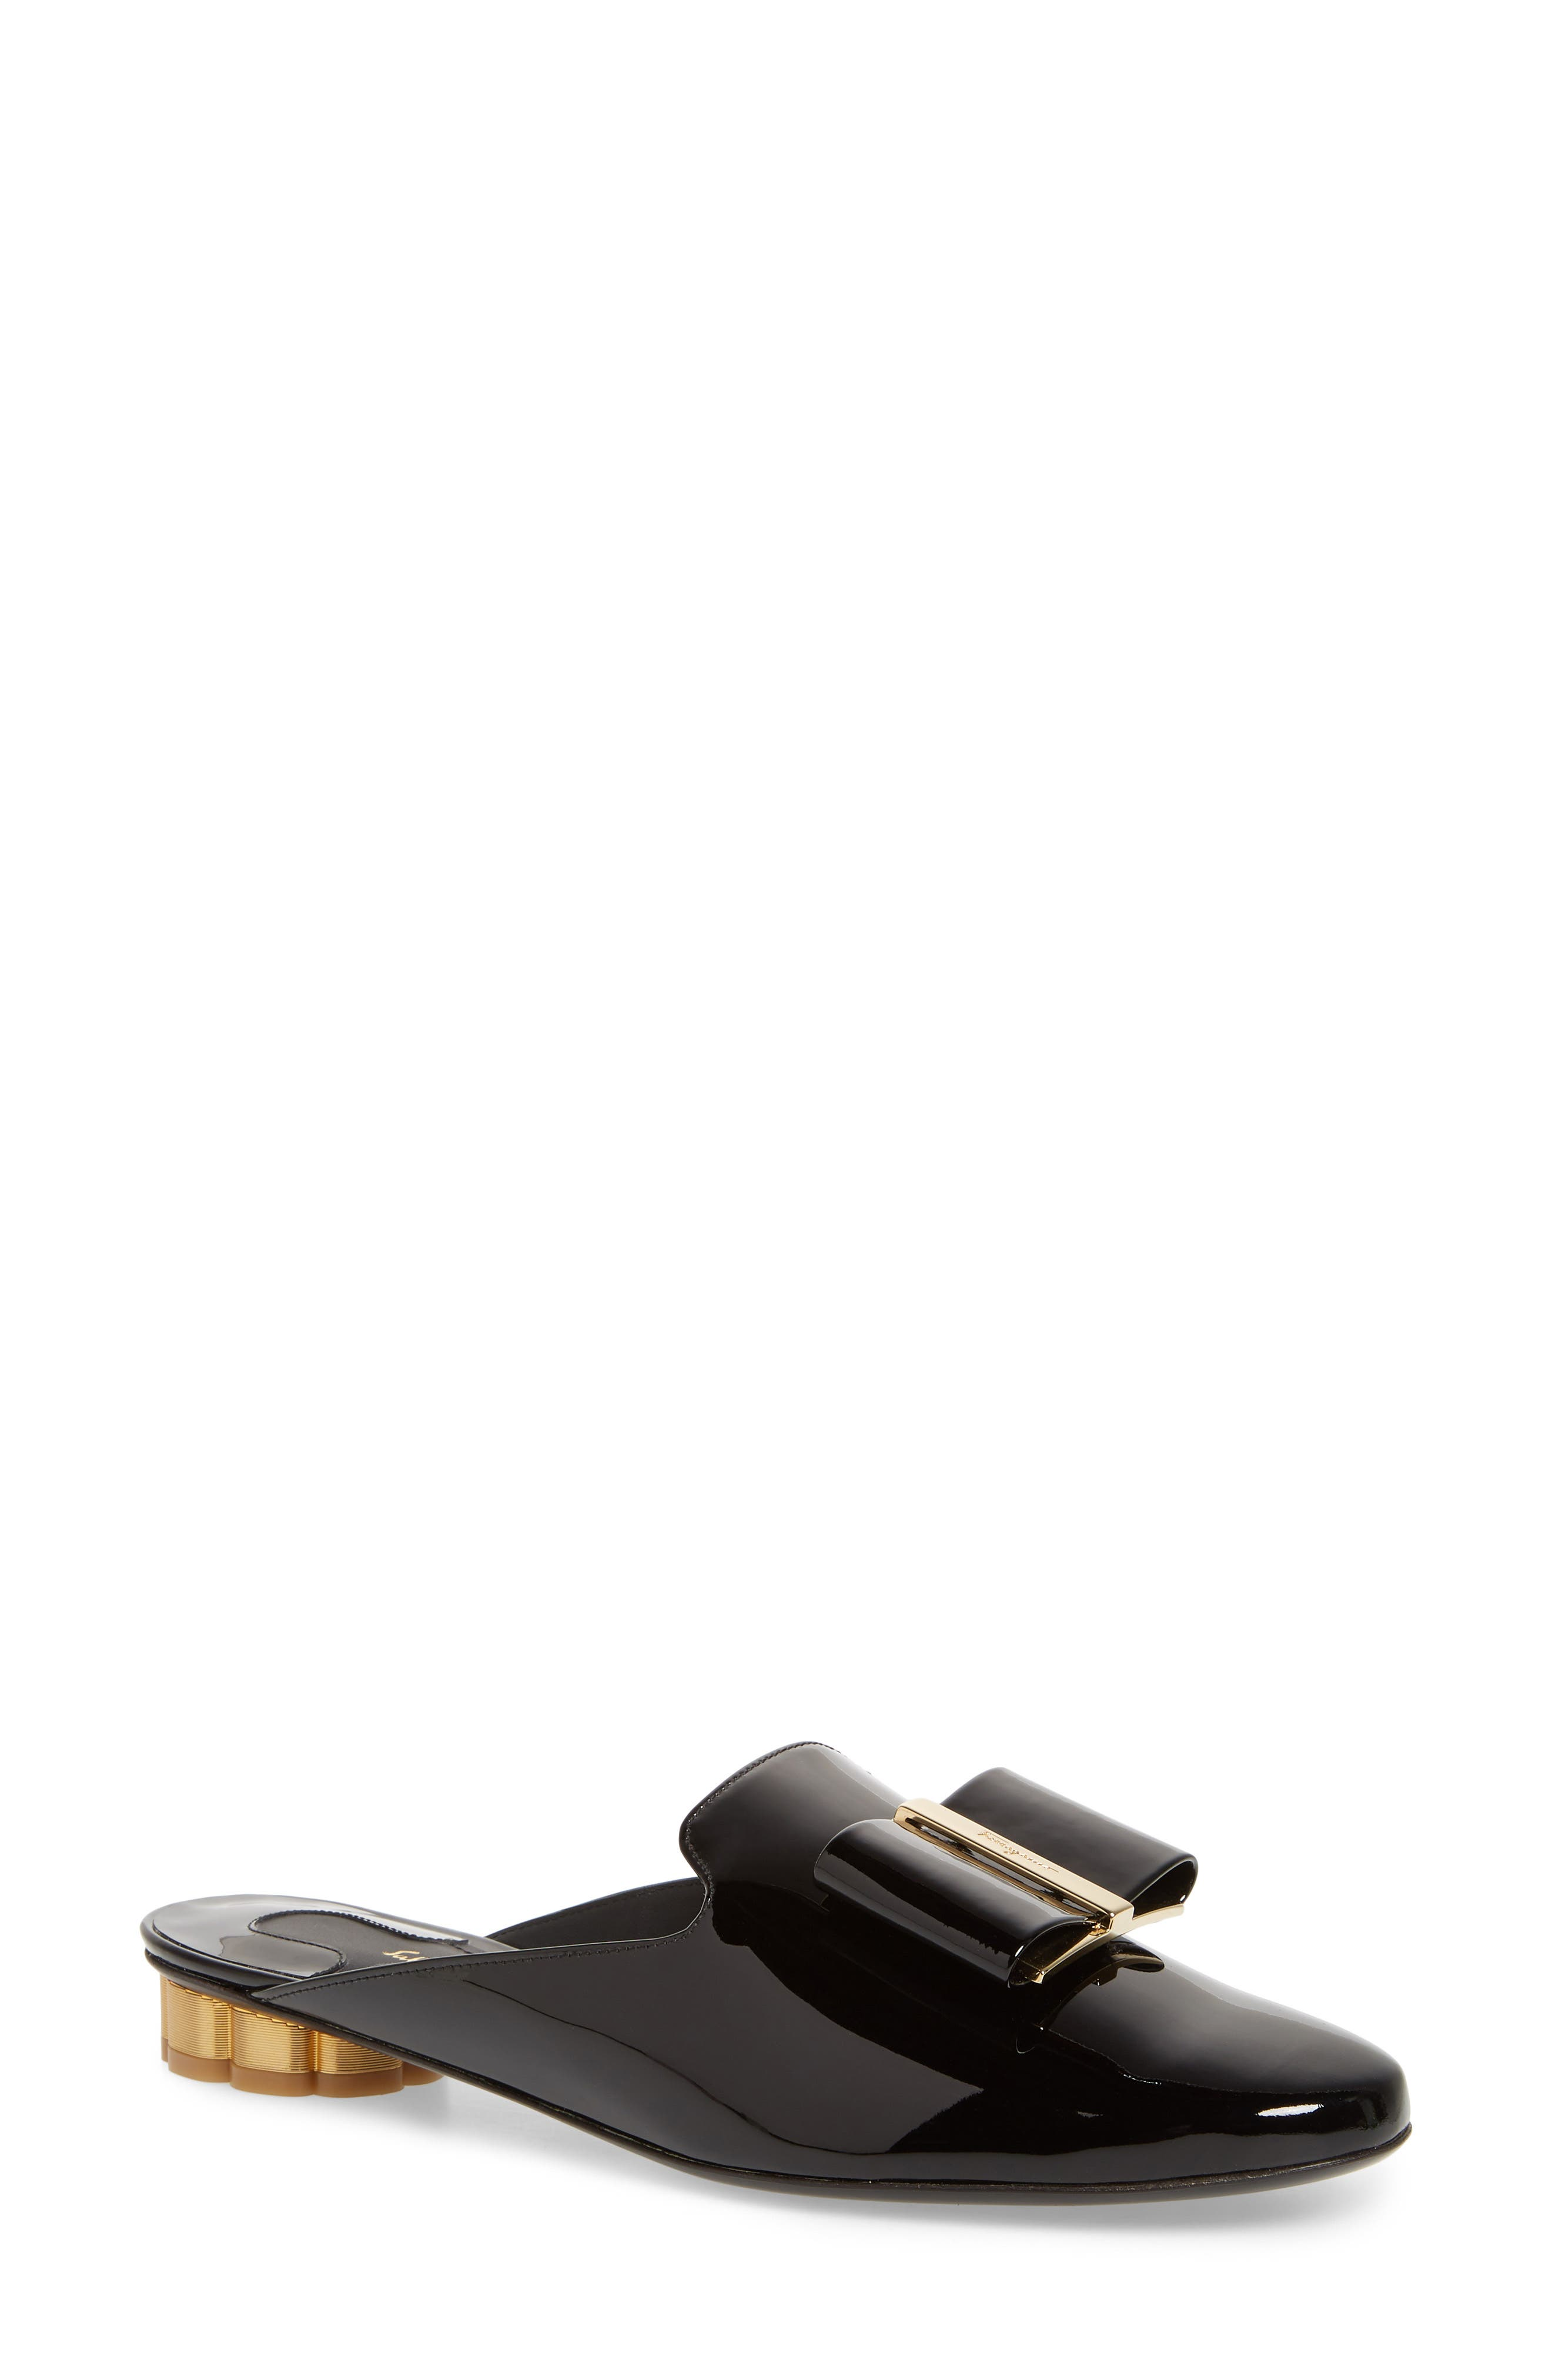 Sciacca Bow Loafer Mule,                         Main,                         color, Black Patent